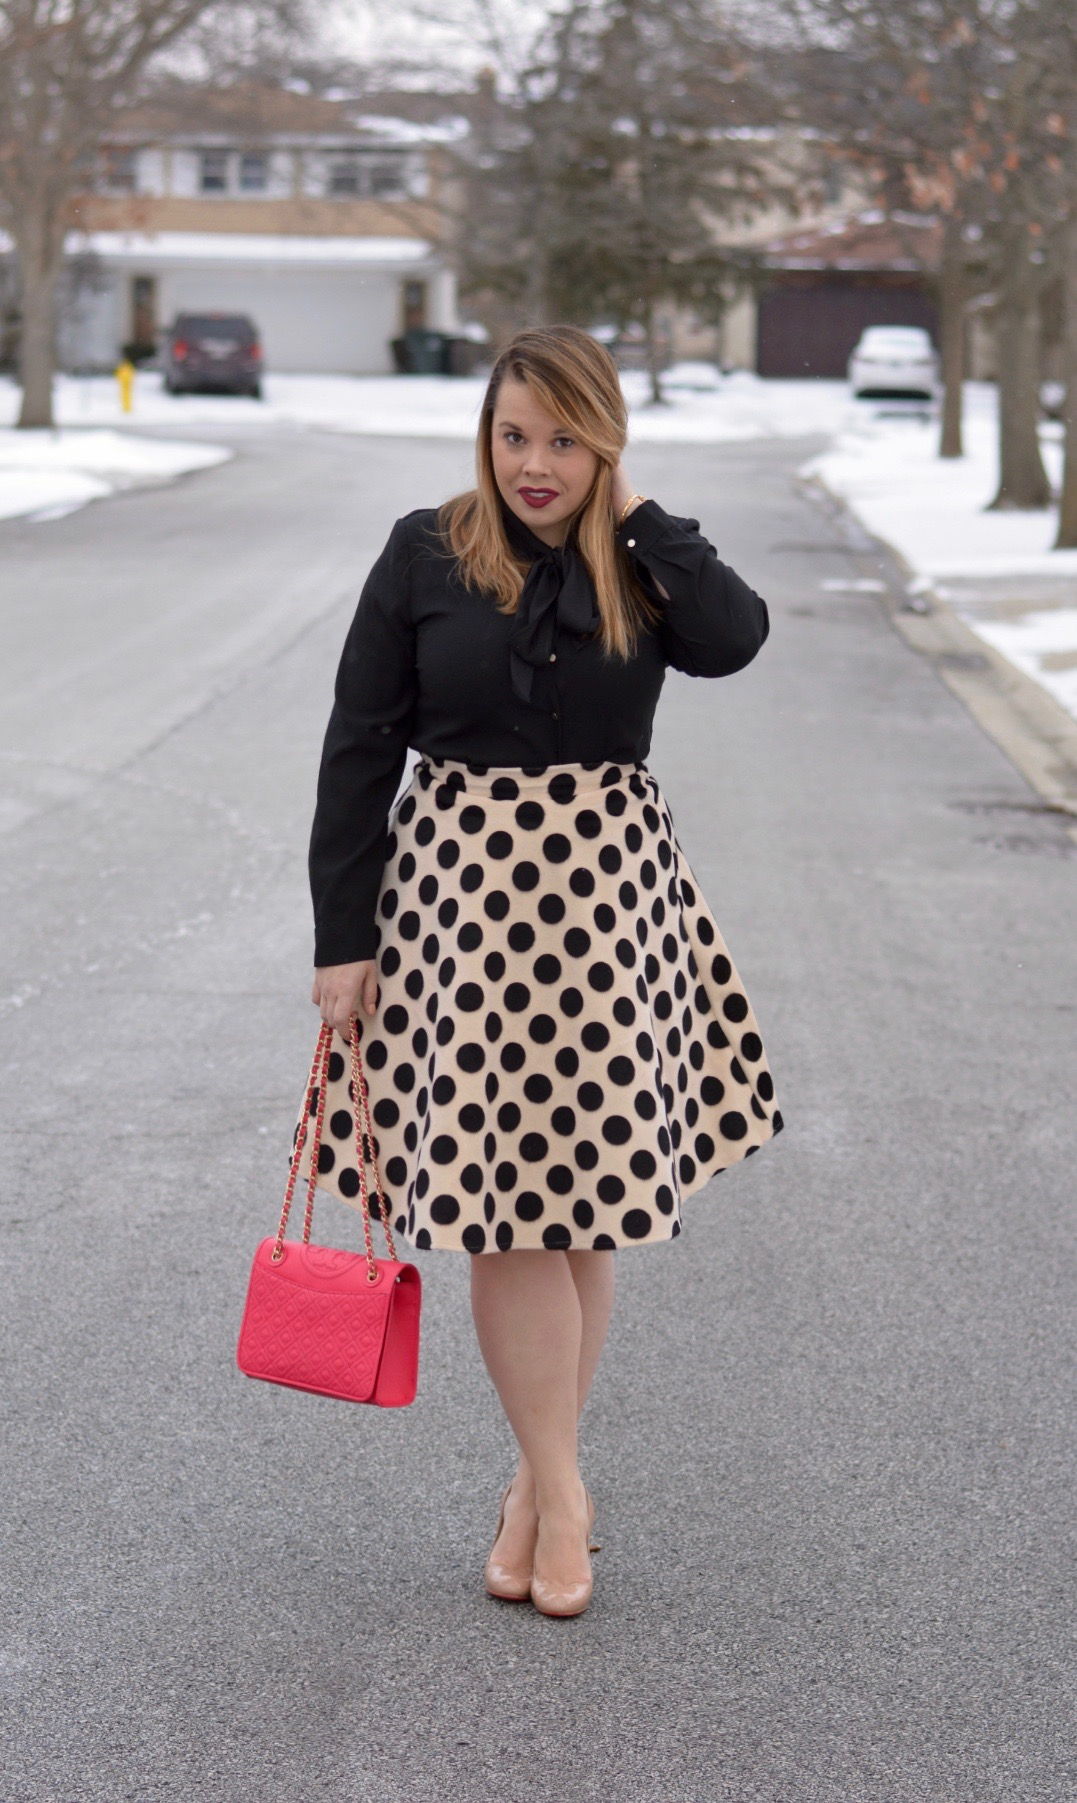 workwear wednesday- polka dot midi 4